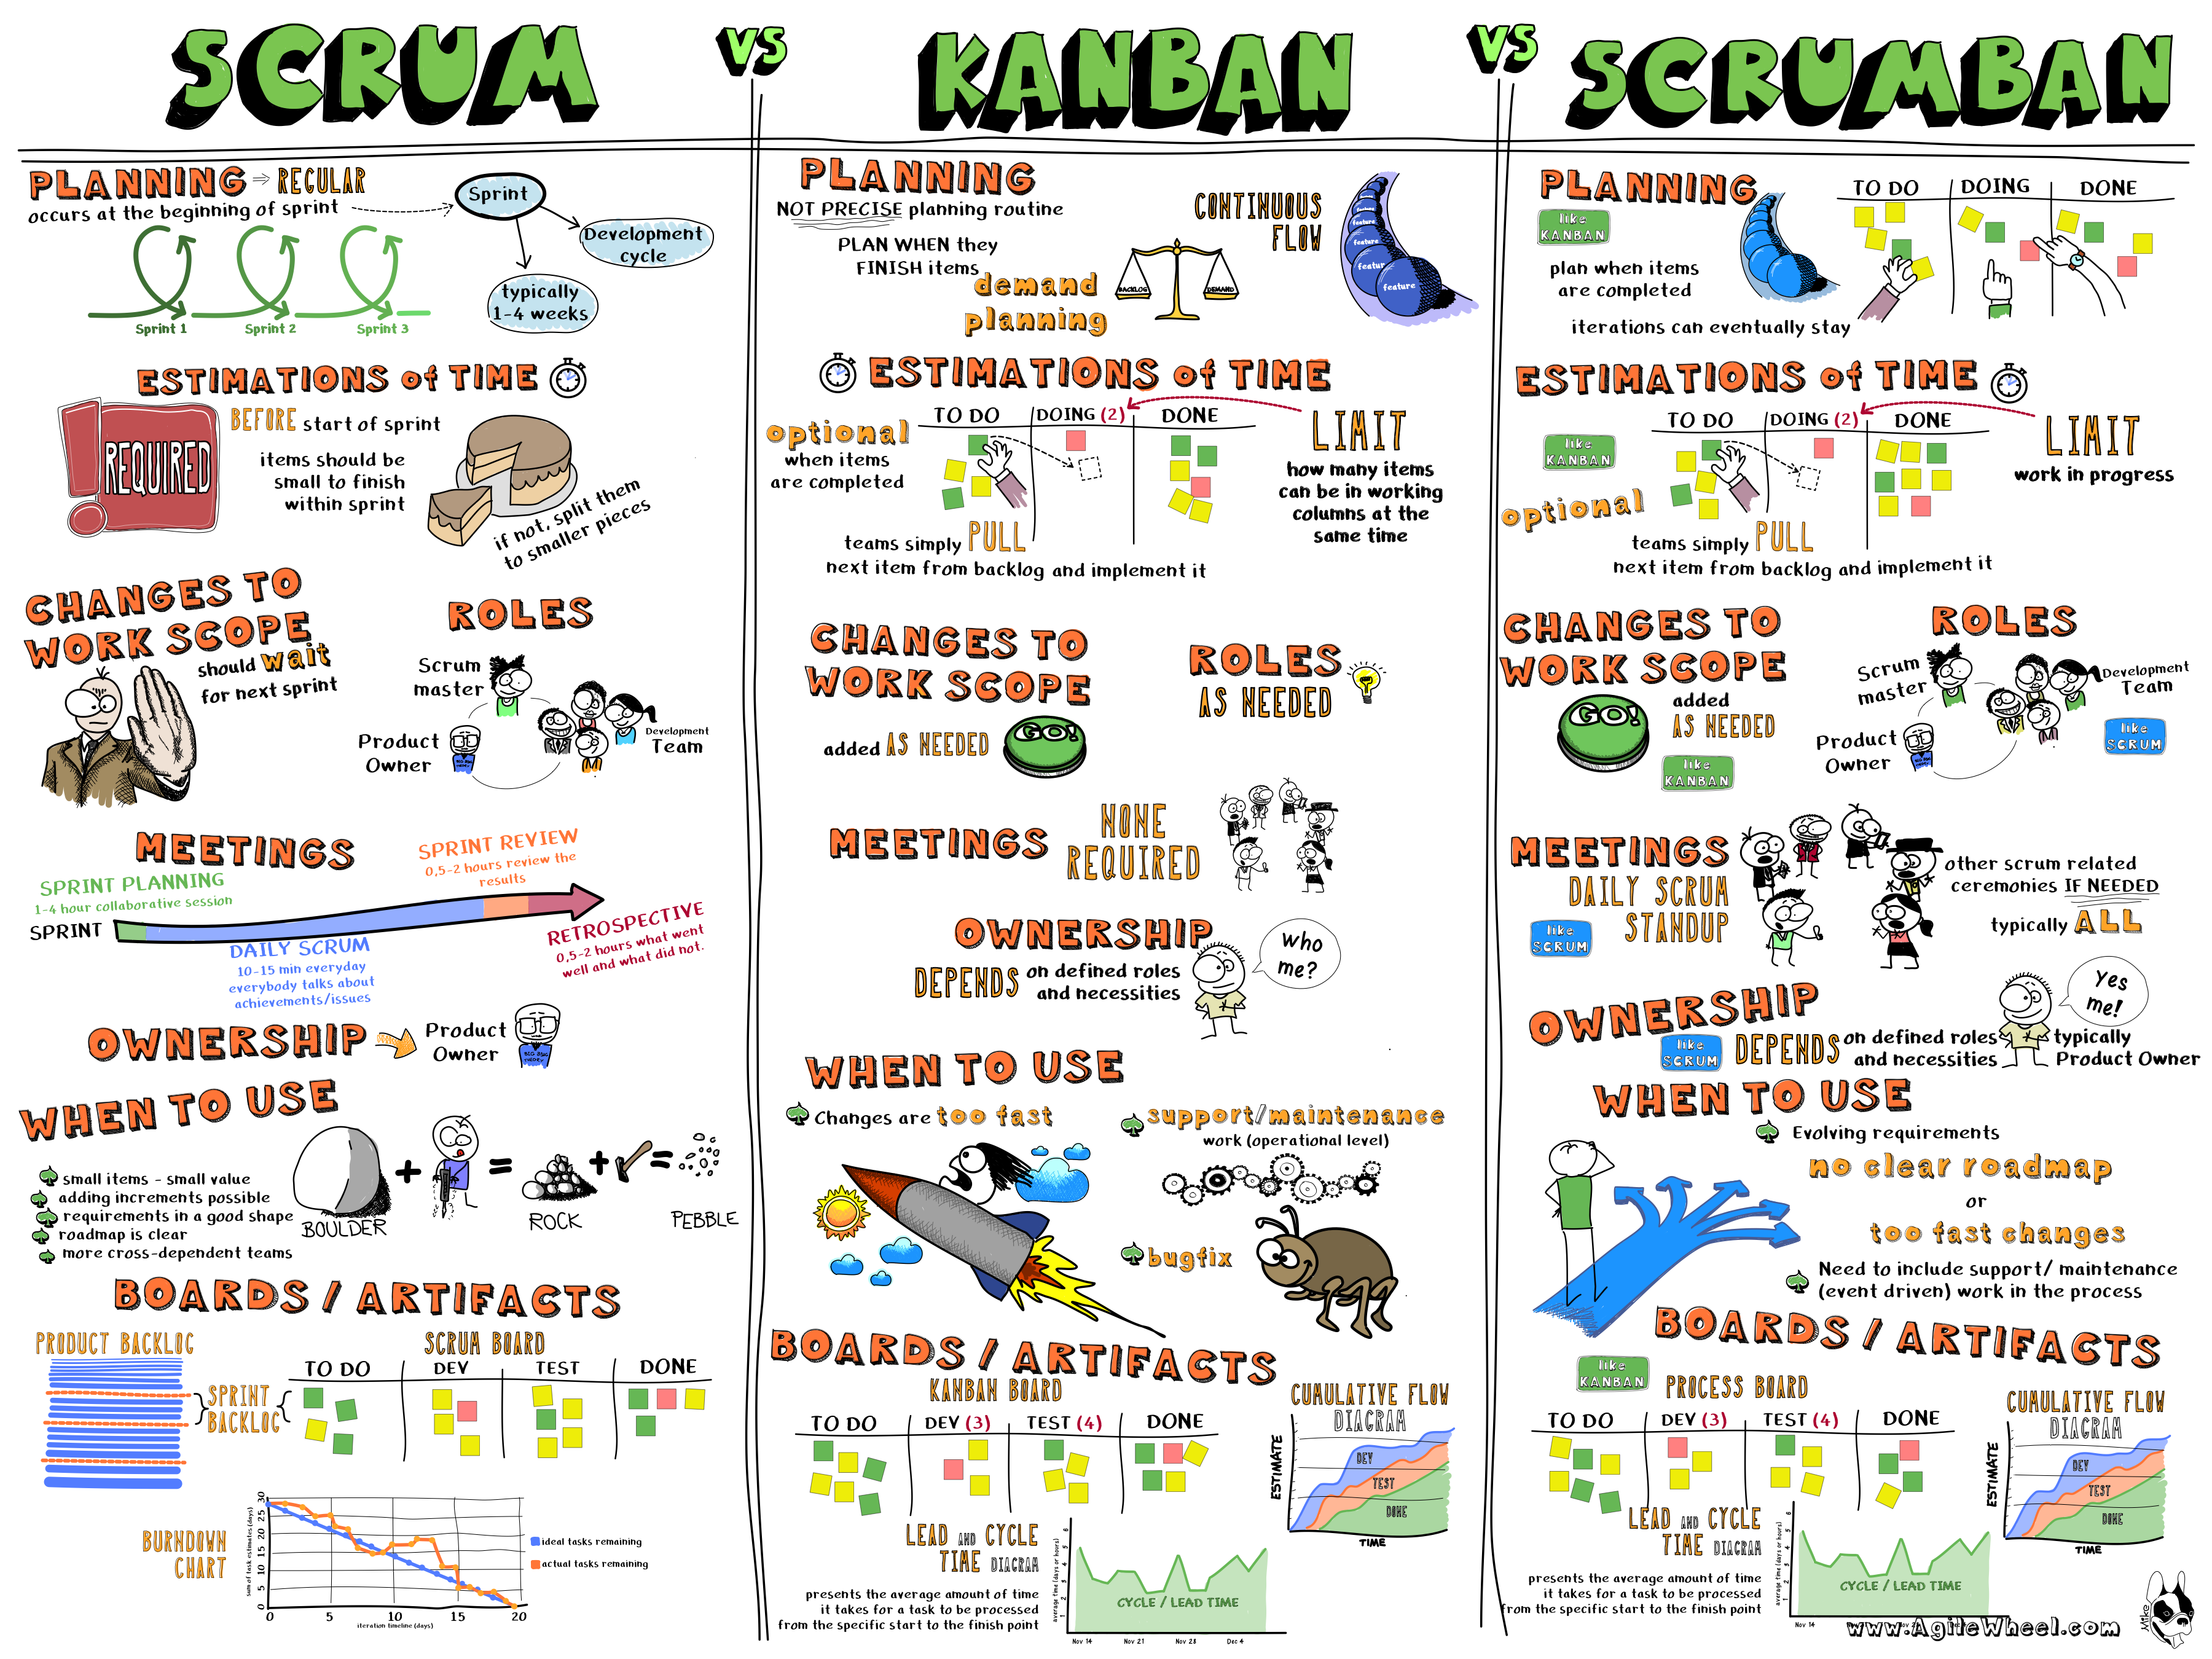 Scrum vs kanban vs scrumban agile wheel pm pinterest for Sdlc vs scrum